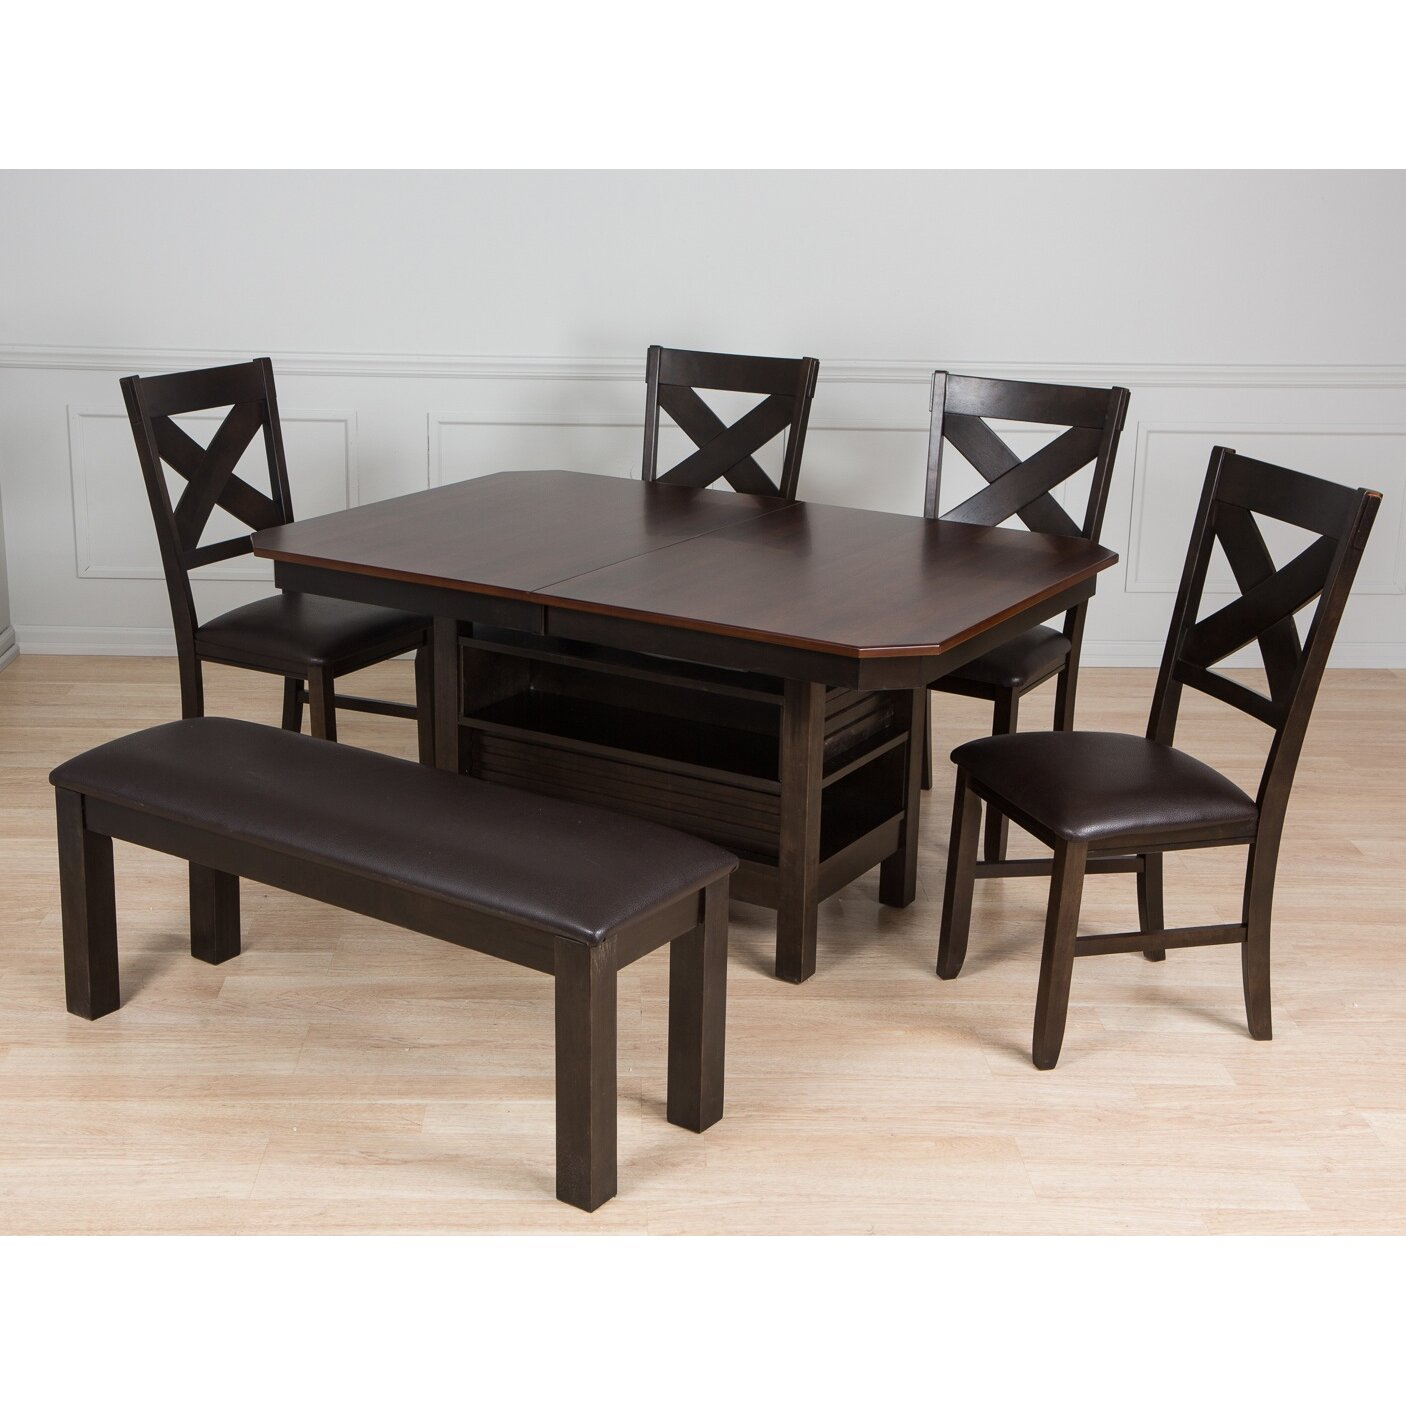 Aw furniture 6 piece dining set for 2 piece dining room set